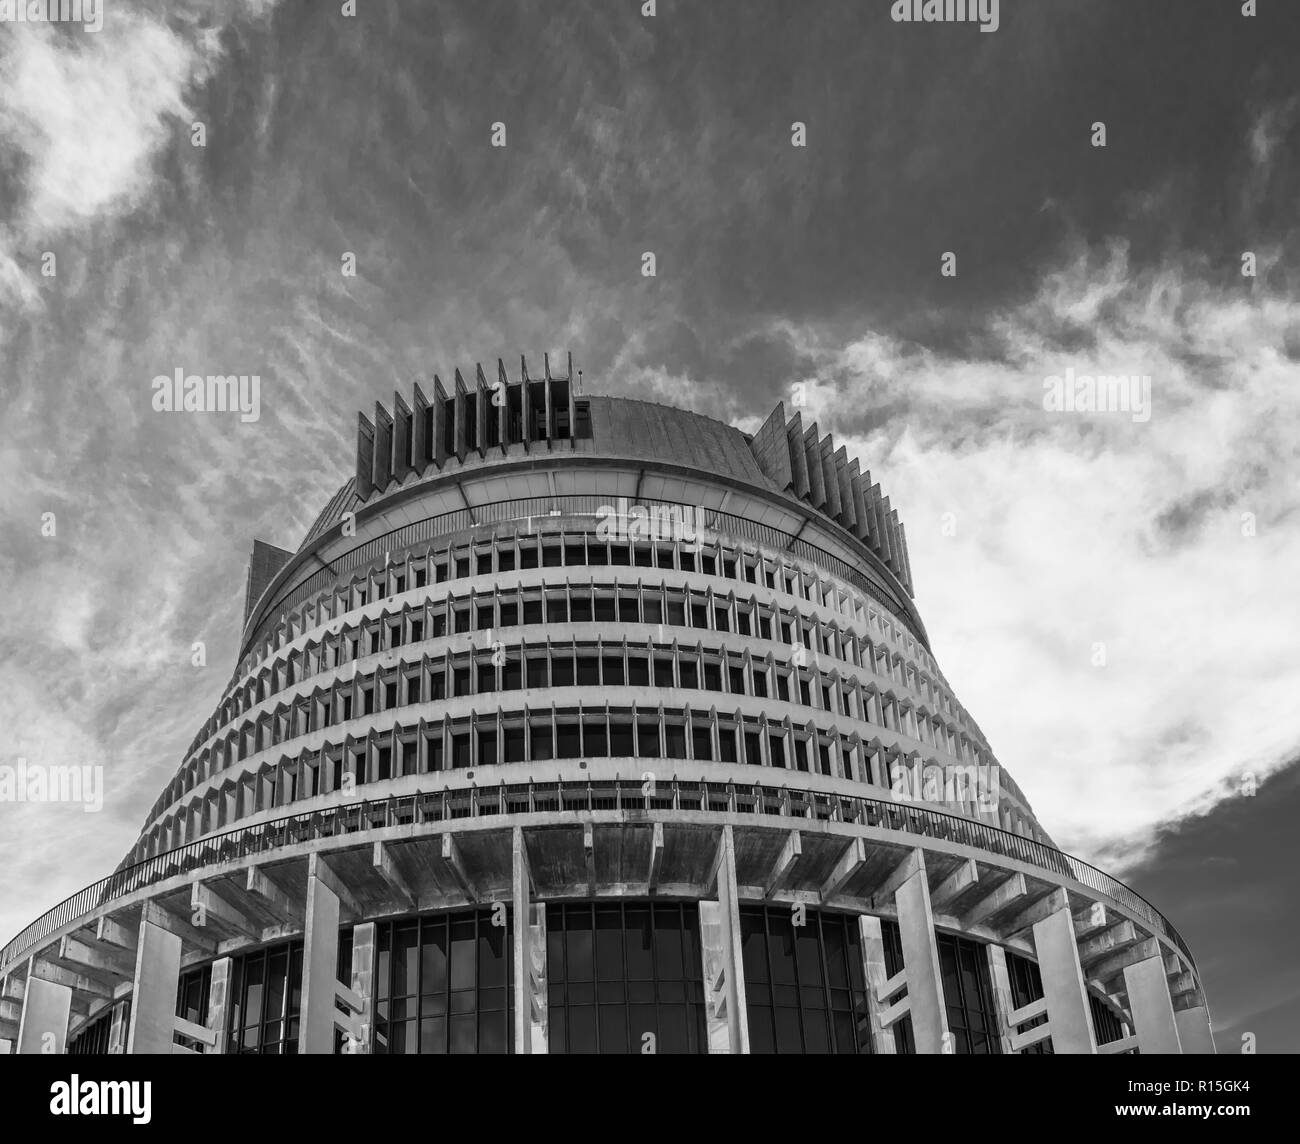 Black and white image of New Zealand Parliament House known as the Beehive in the capital city Wellington - Stock Image